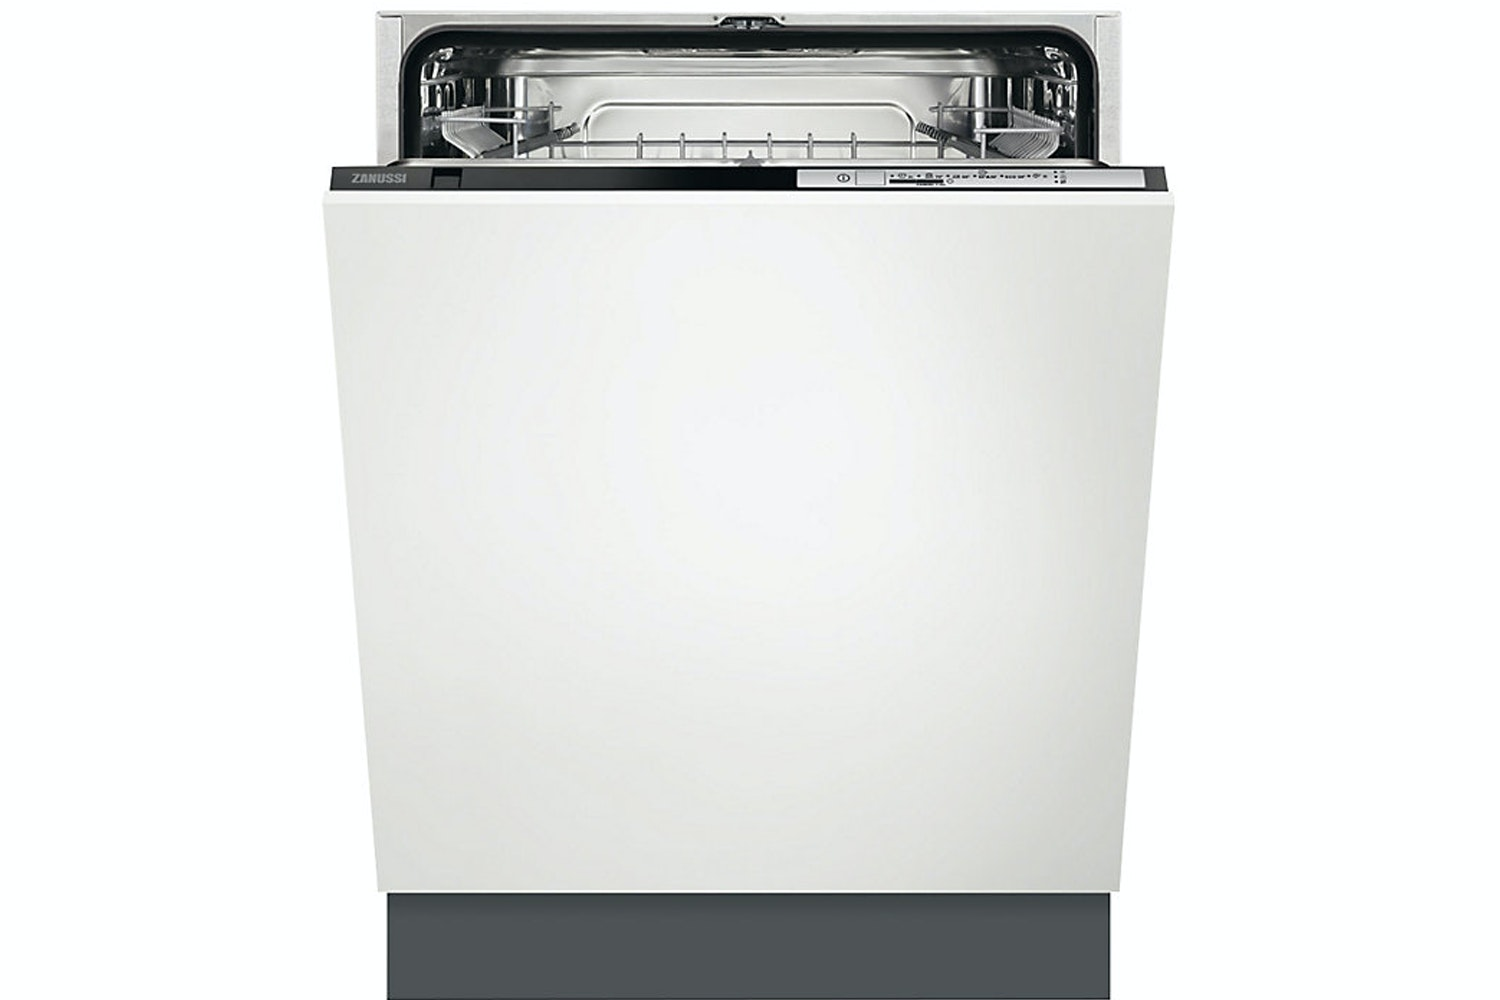 Zanussi Fully Integrated Dishwasher | 13 Place | ZDT22003FA